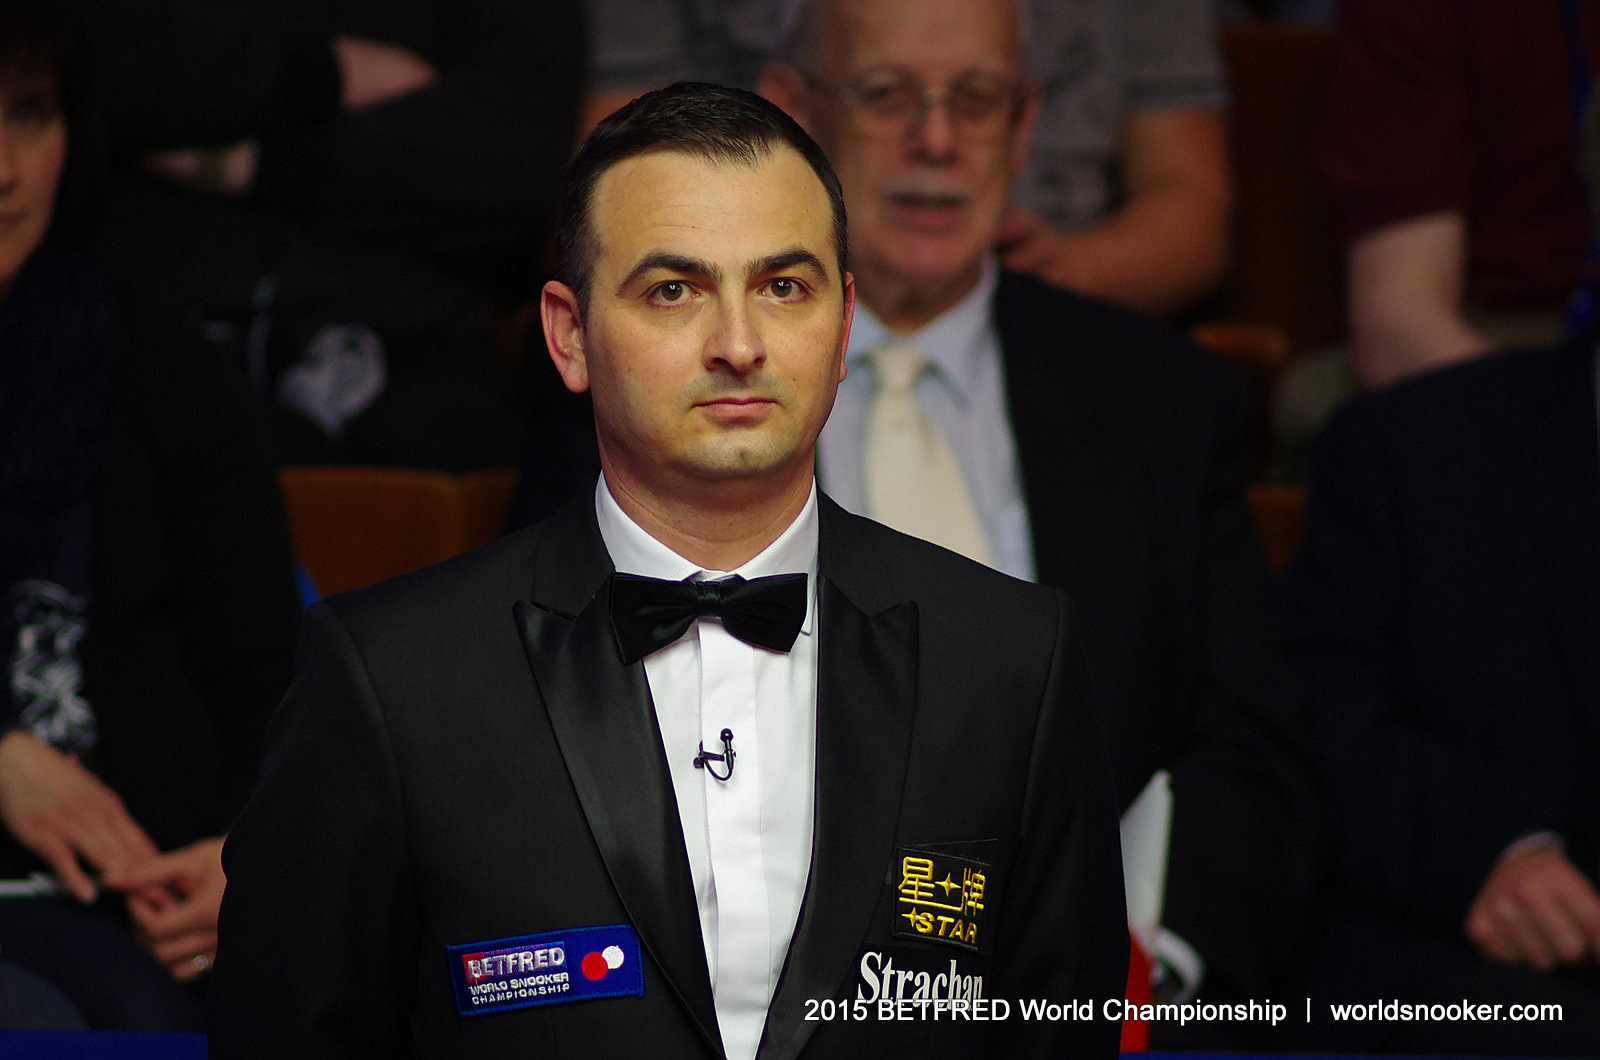 terry camilleri snookerterry camilleri snooker, terry camilleri snooker referee, terry camilleri, terry camilleri longmire, terry camilleri imdb, terry camilleri actor, terry camilleri referee, terry camilleri snooker twitter, terry camilleri facebook, terry camilleri snooker ref